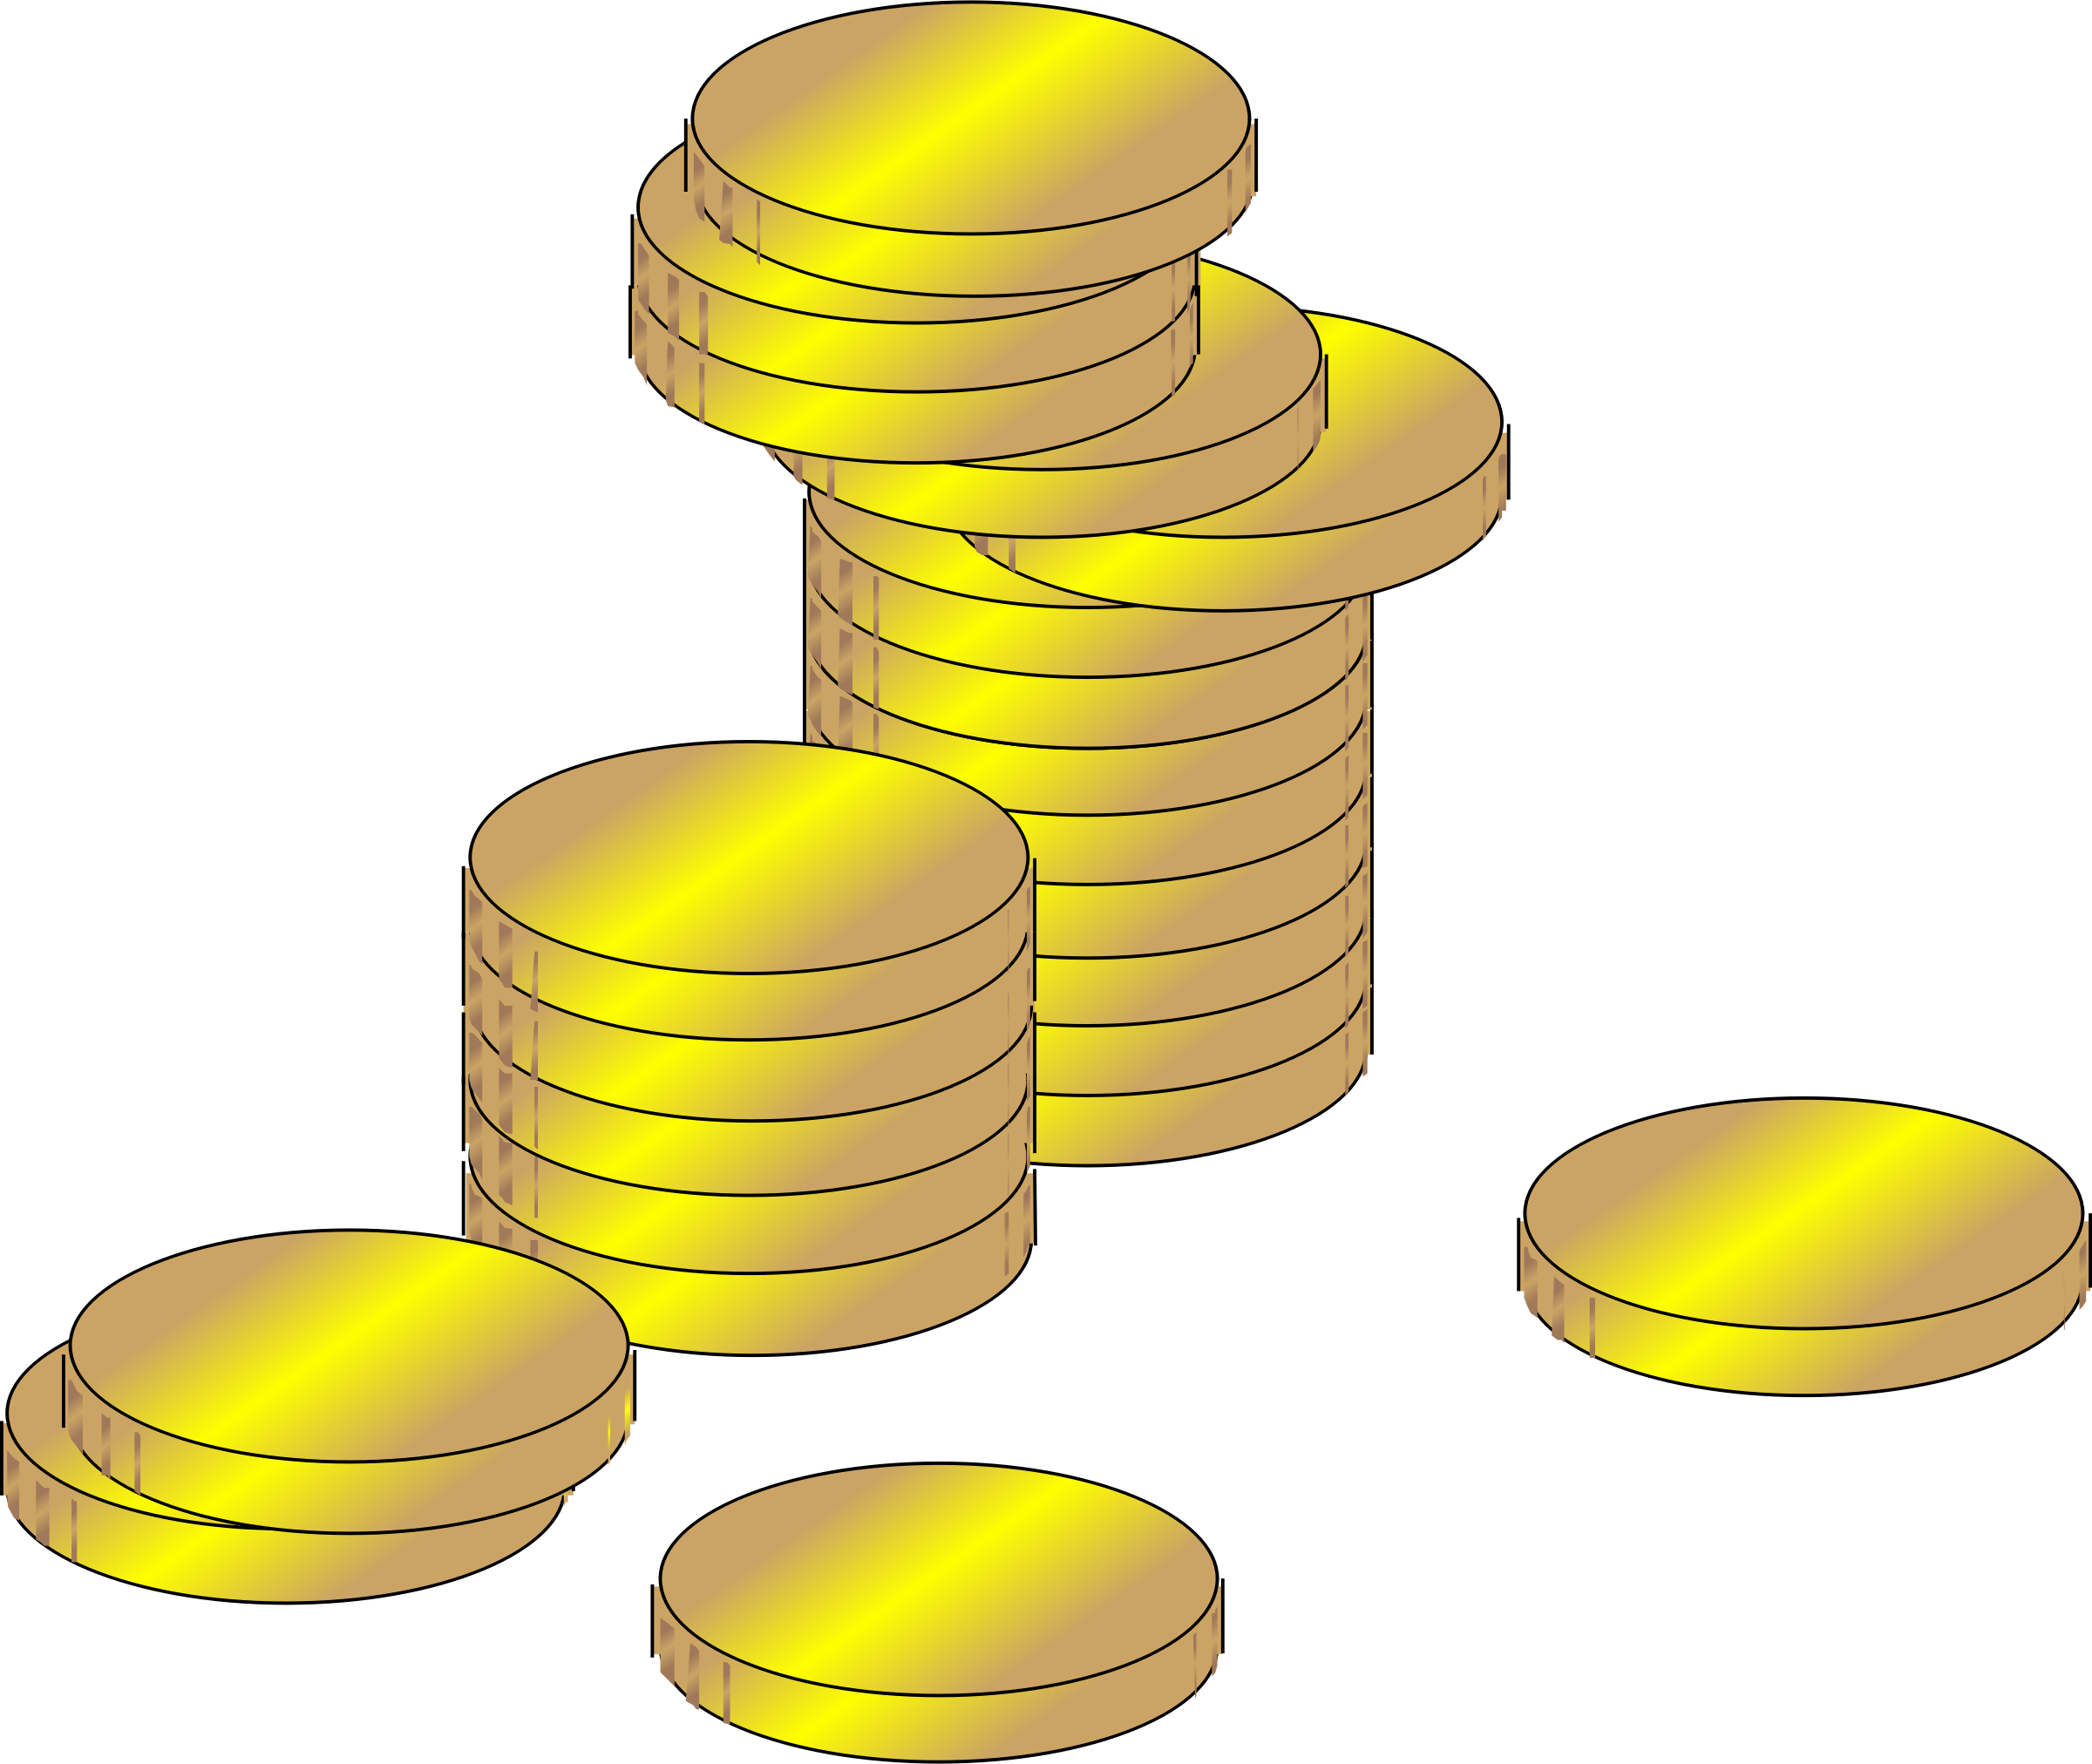 picture transparent stock Coins clipart. Gold coin free on